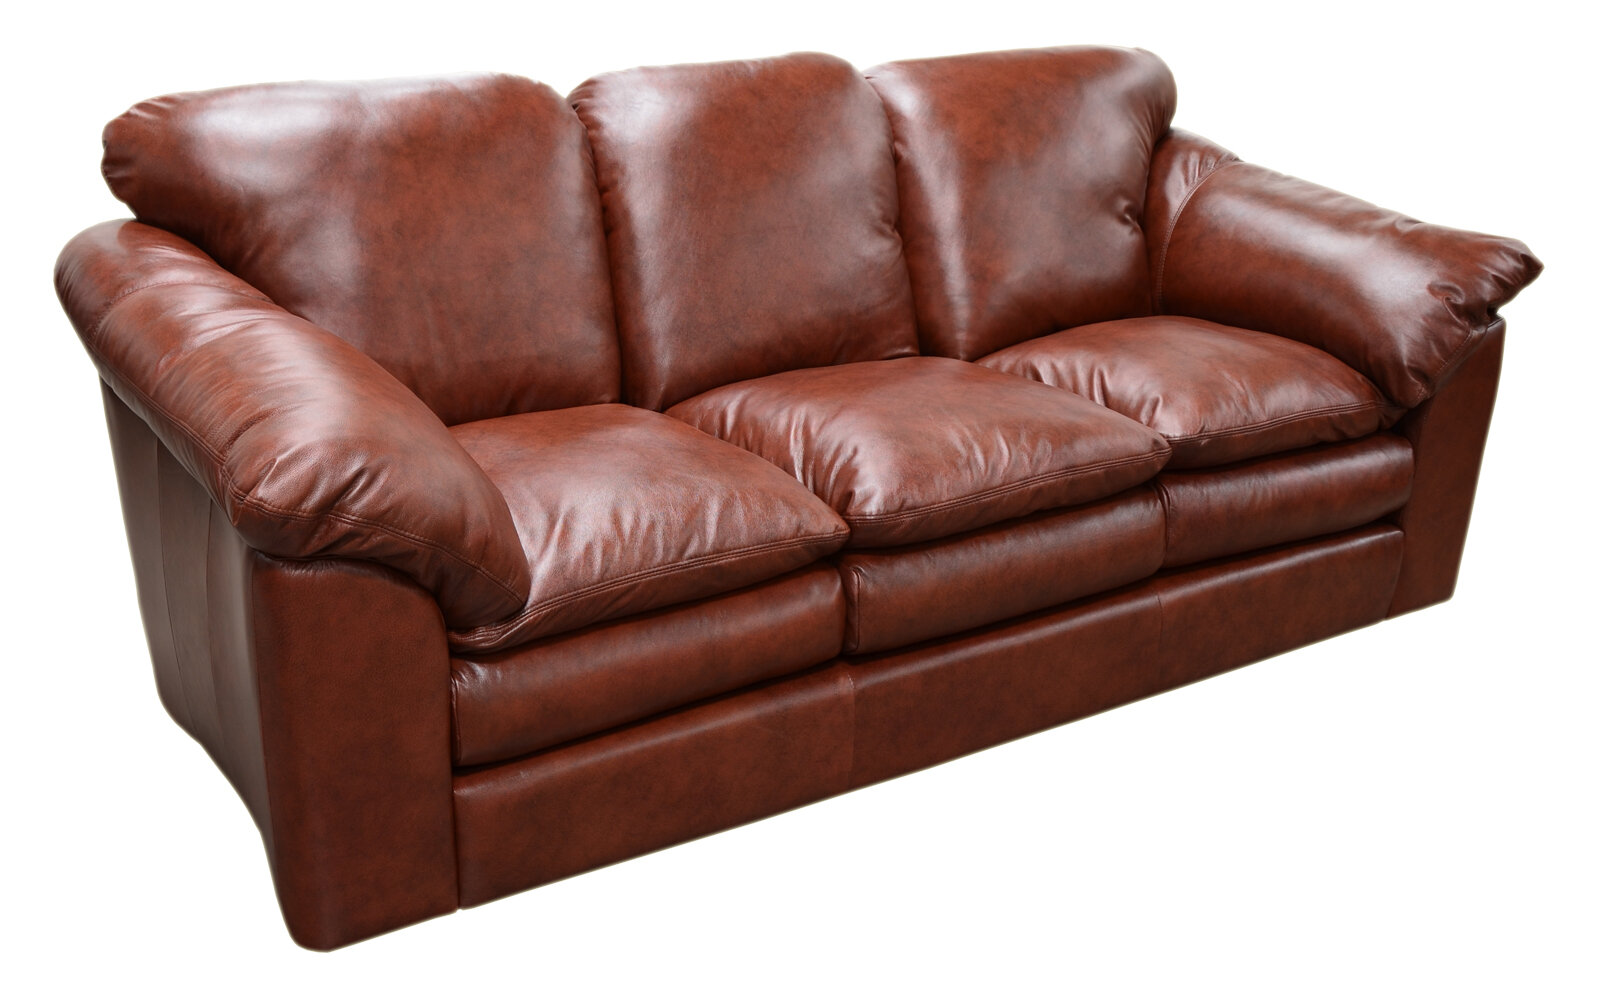 Marvelous Omnia Leather Oregon Leather Sofa Reviews Wayfair Squirreltailoven Fun Painted Chair Ideas Images Squirreltailovenorg